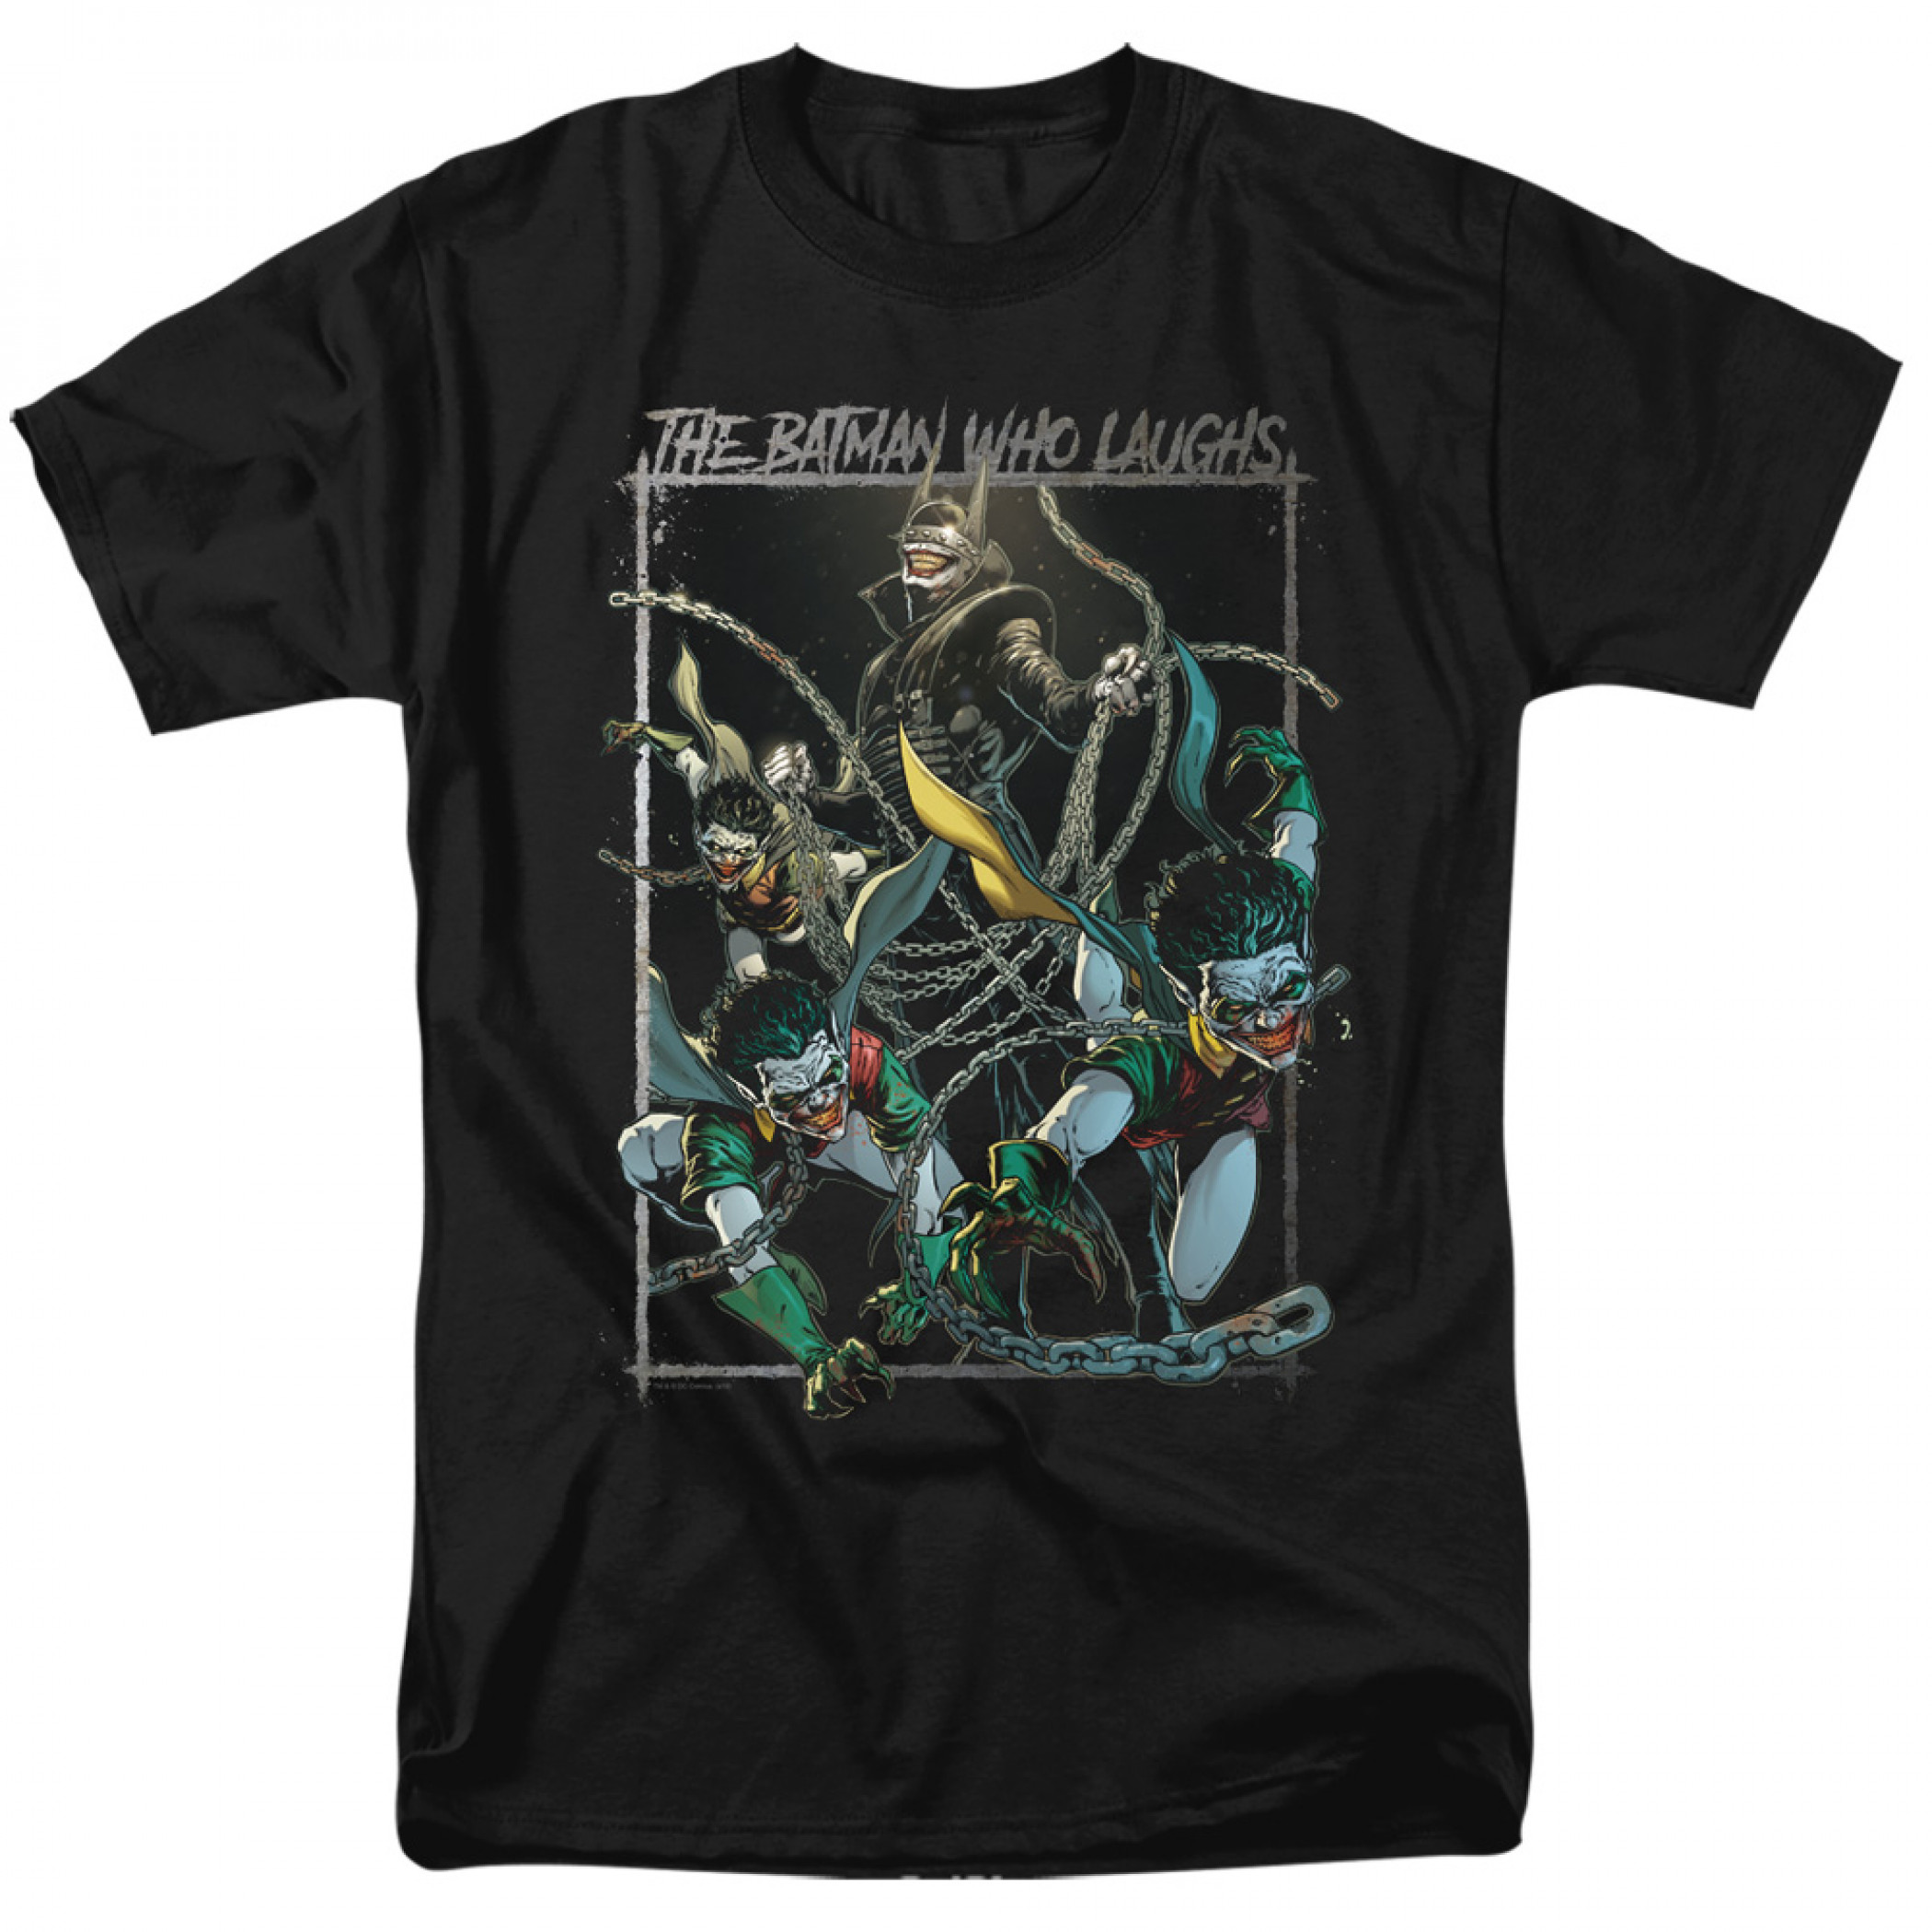 The Joker Batman Who Laughs T-Shirt